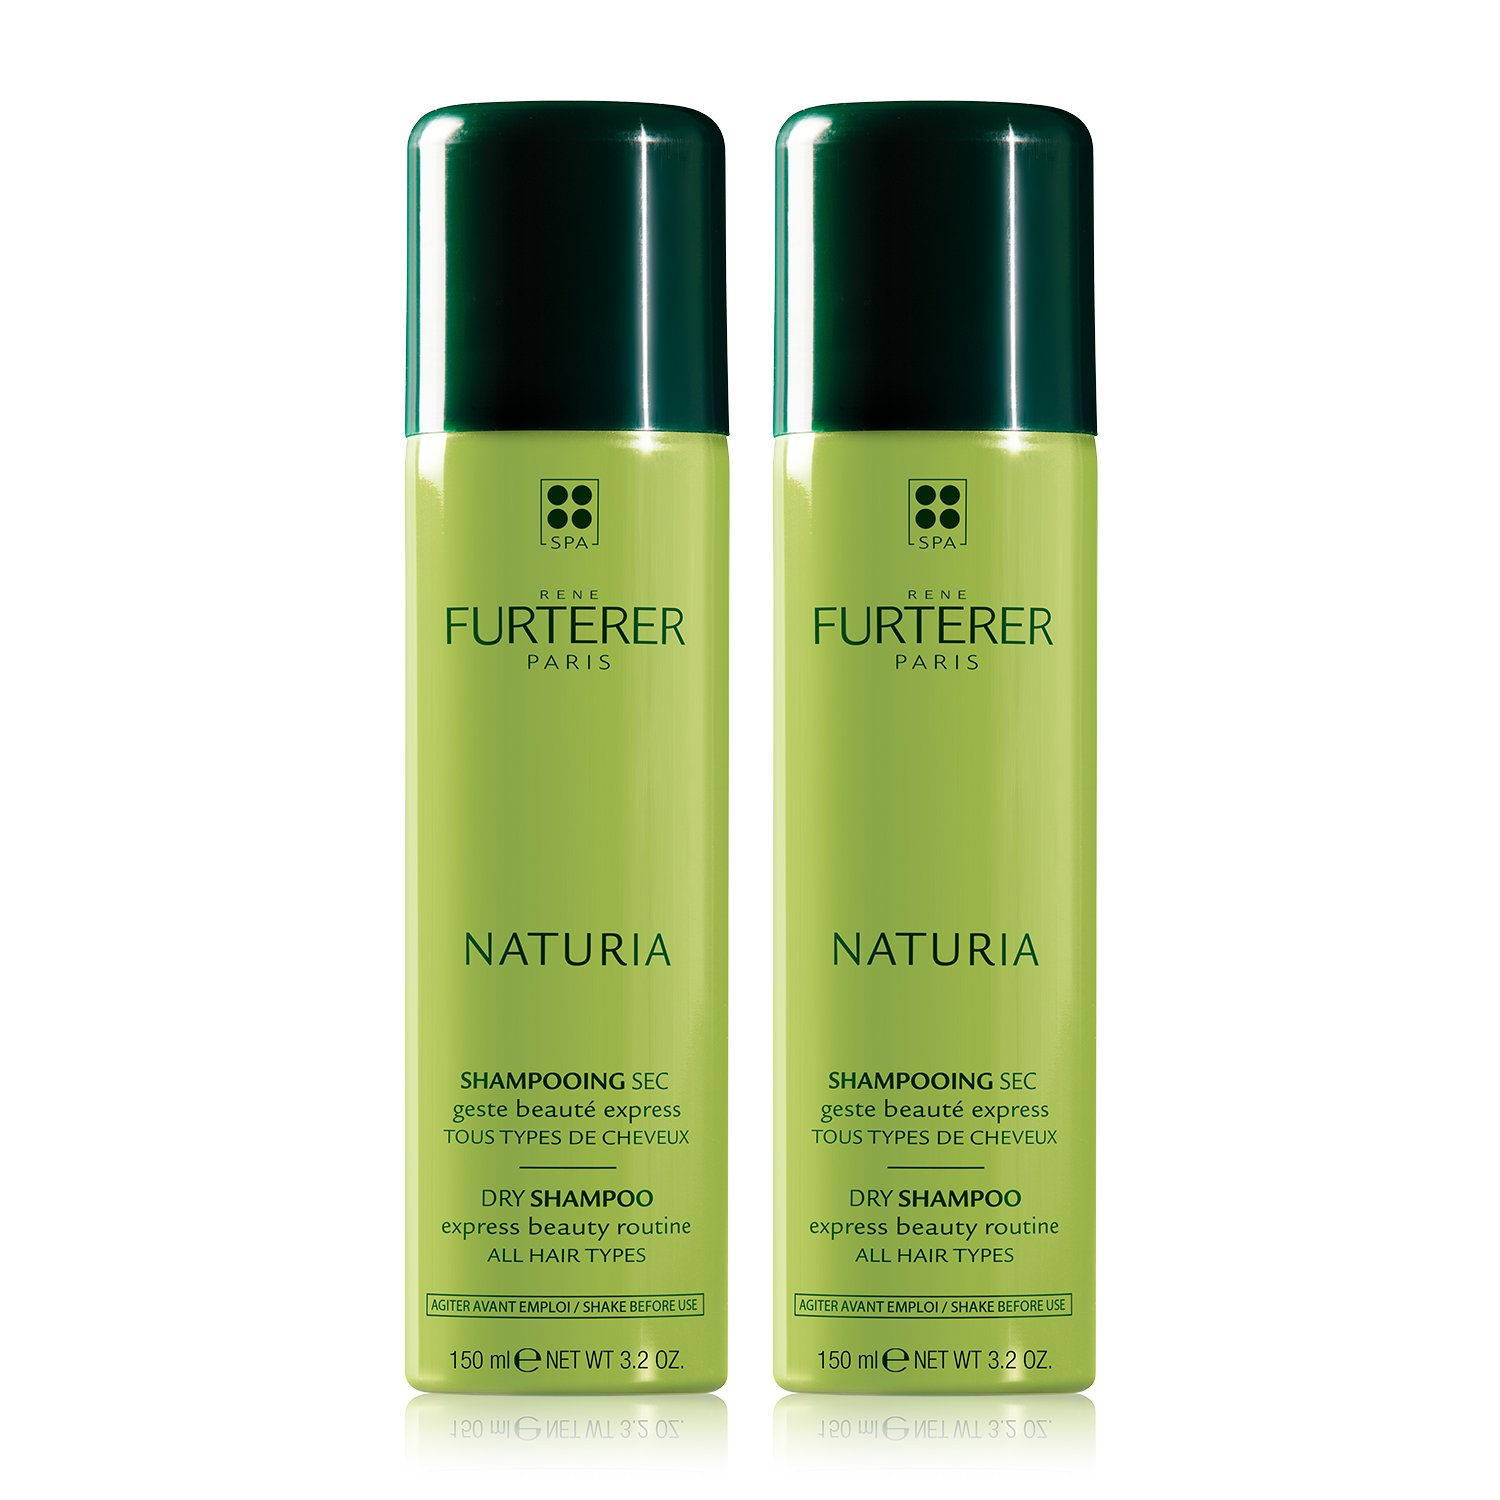 Rene Furterer NATURIA Dry Shampoo Duo, Oil-Absorbing, Clay, Beige Tint, Set of 2, 6.4 Fl Oz by Rene Furterer